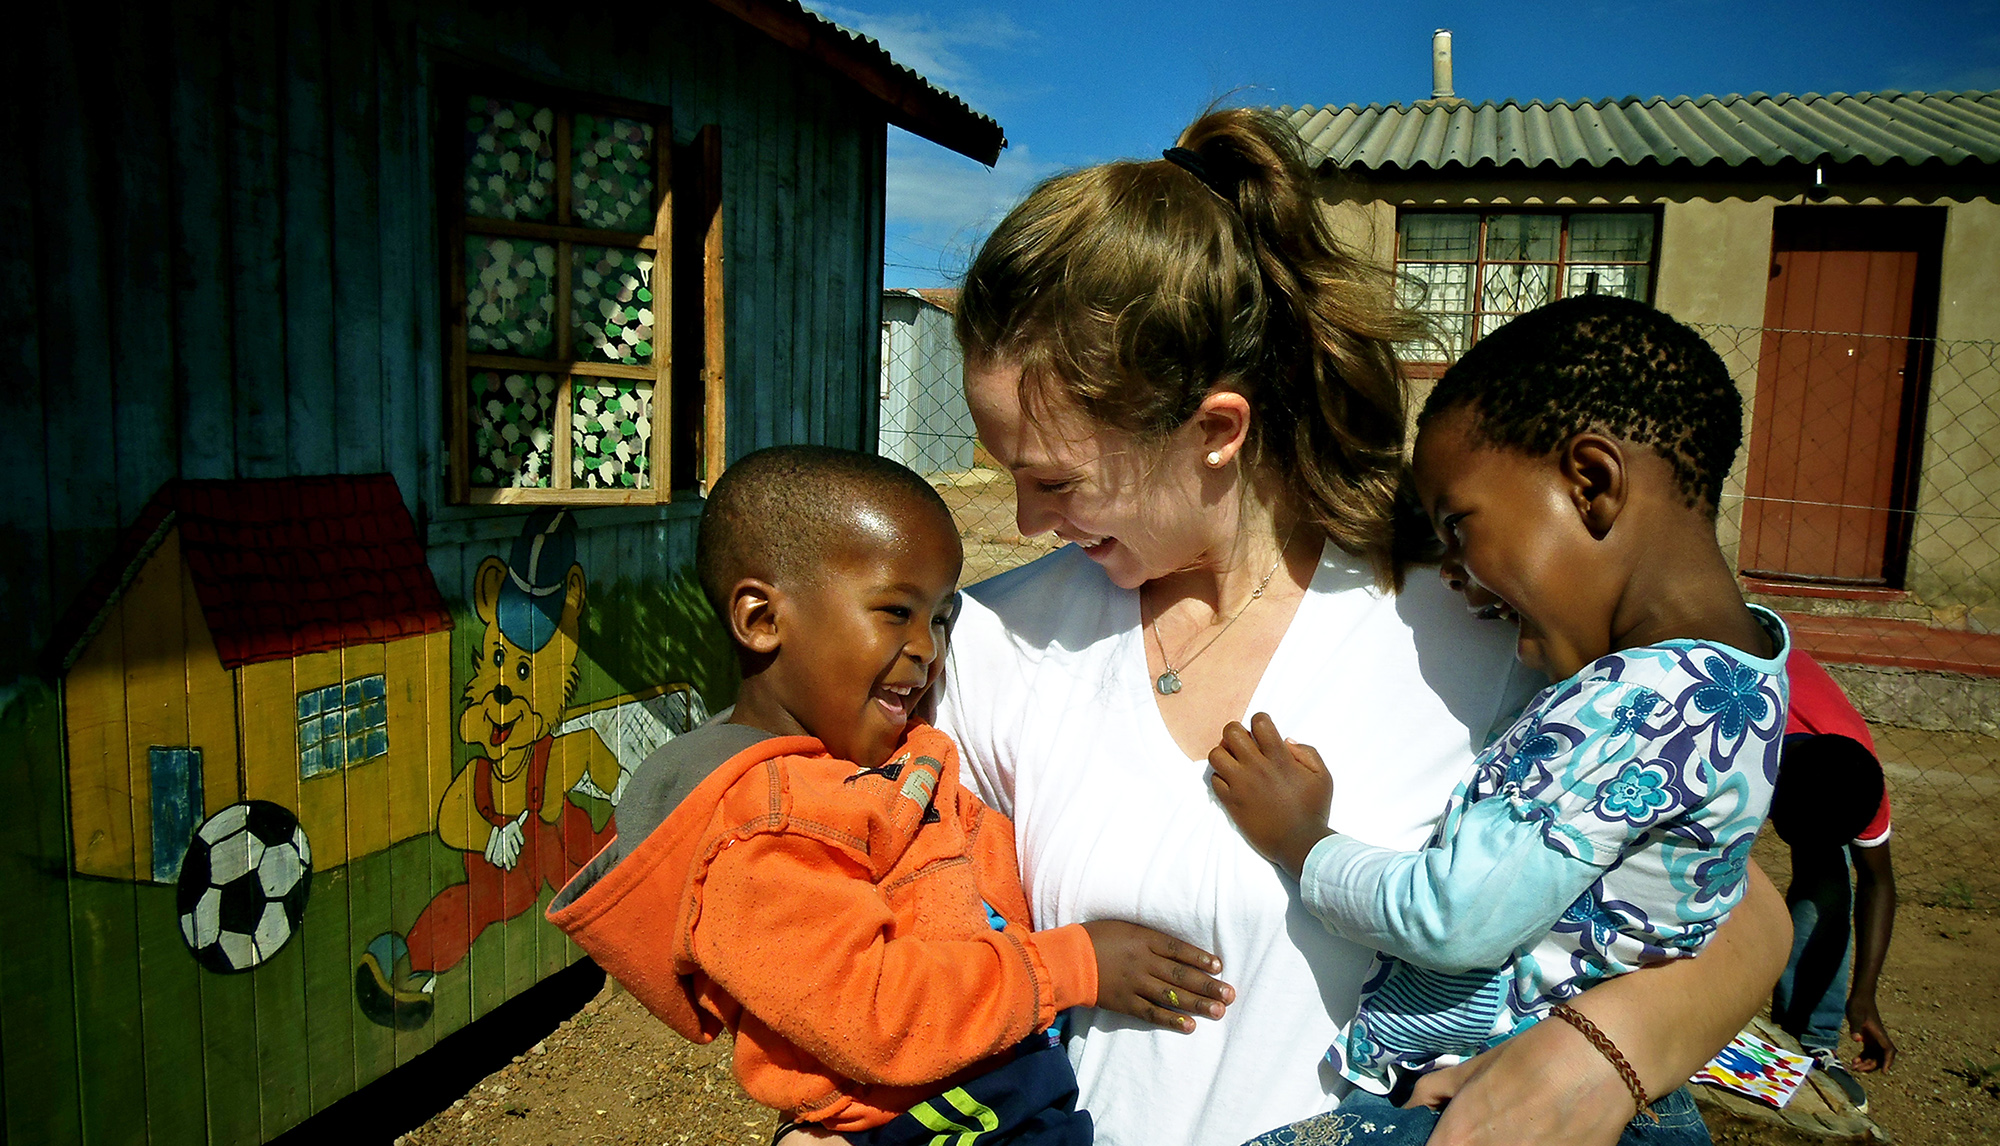 Student teacher with children at South African daycare